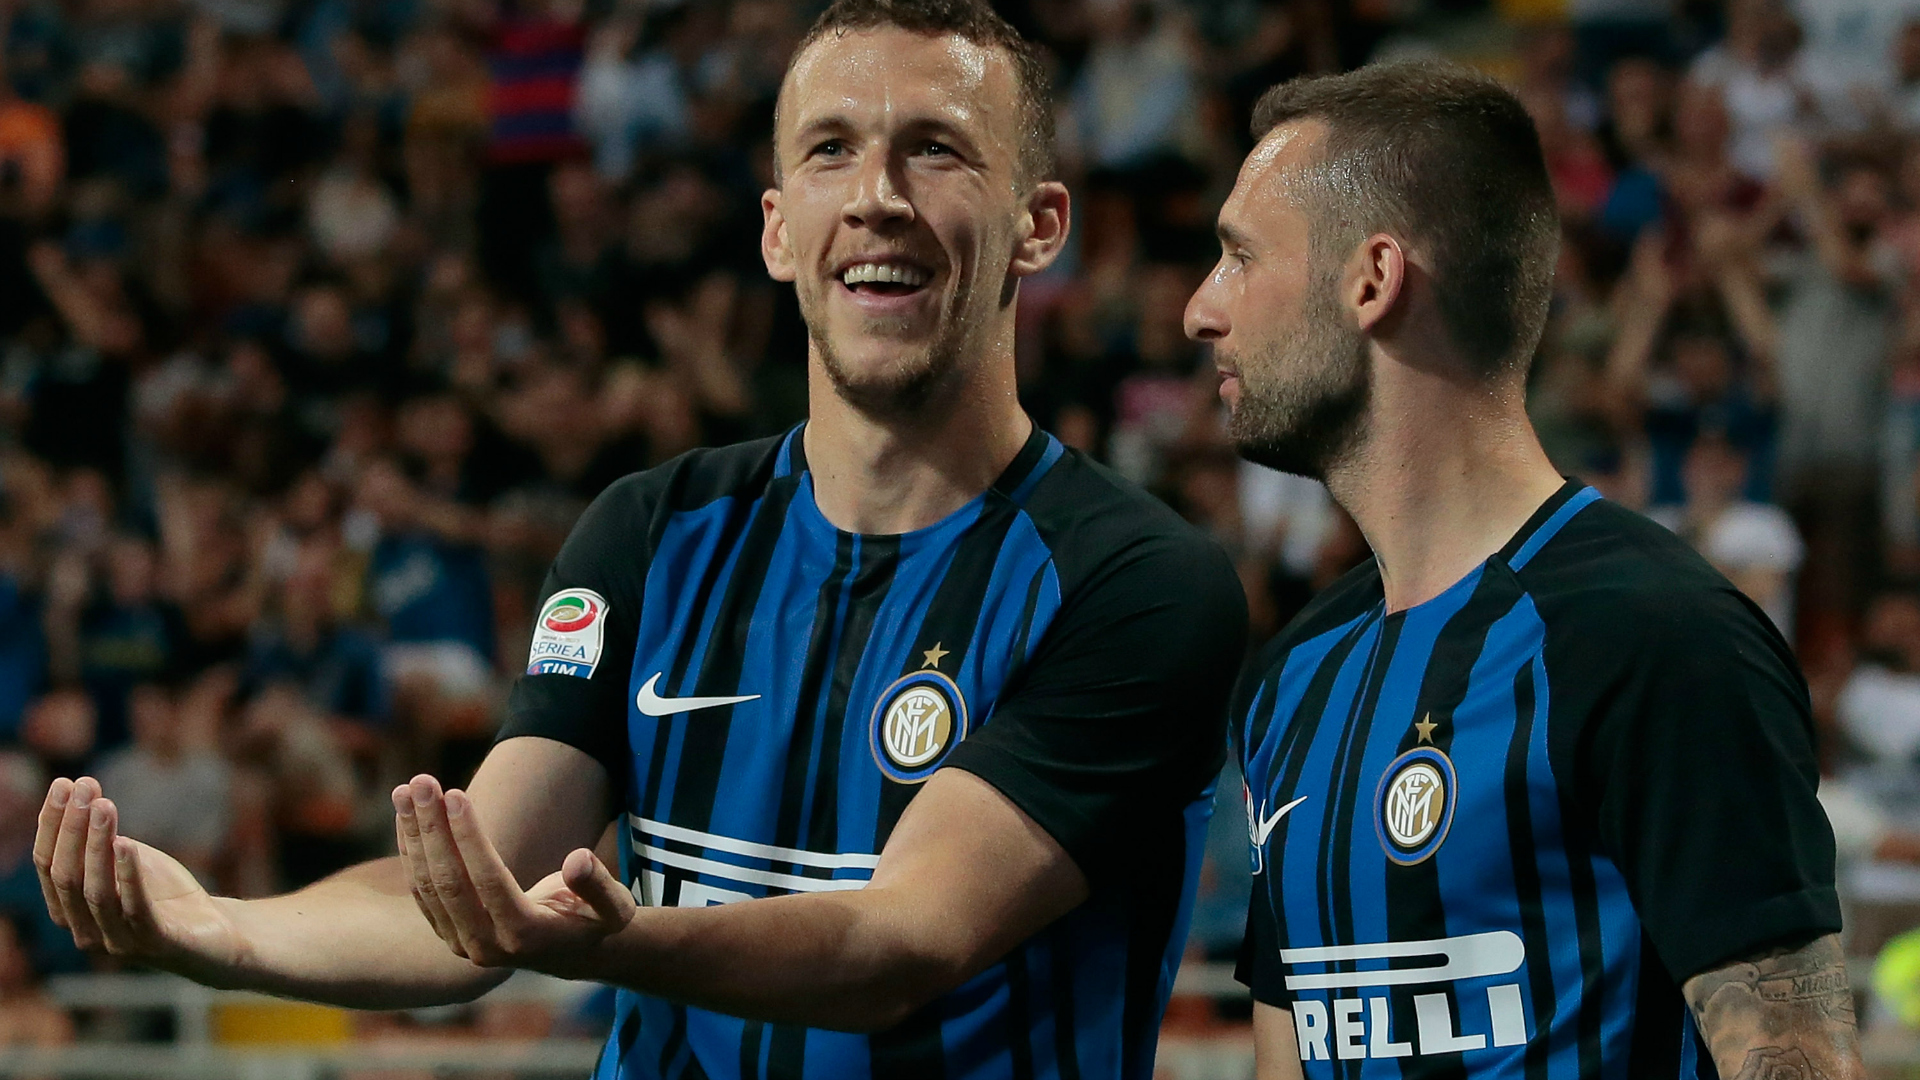 Brozovic Perisic Inter Serie A